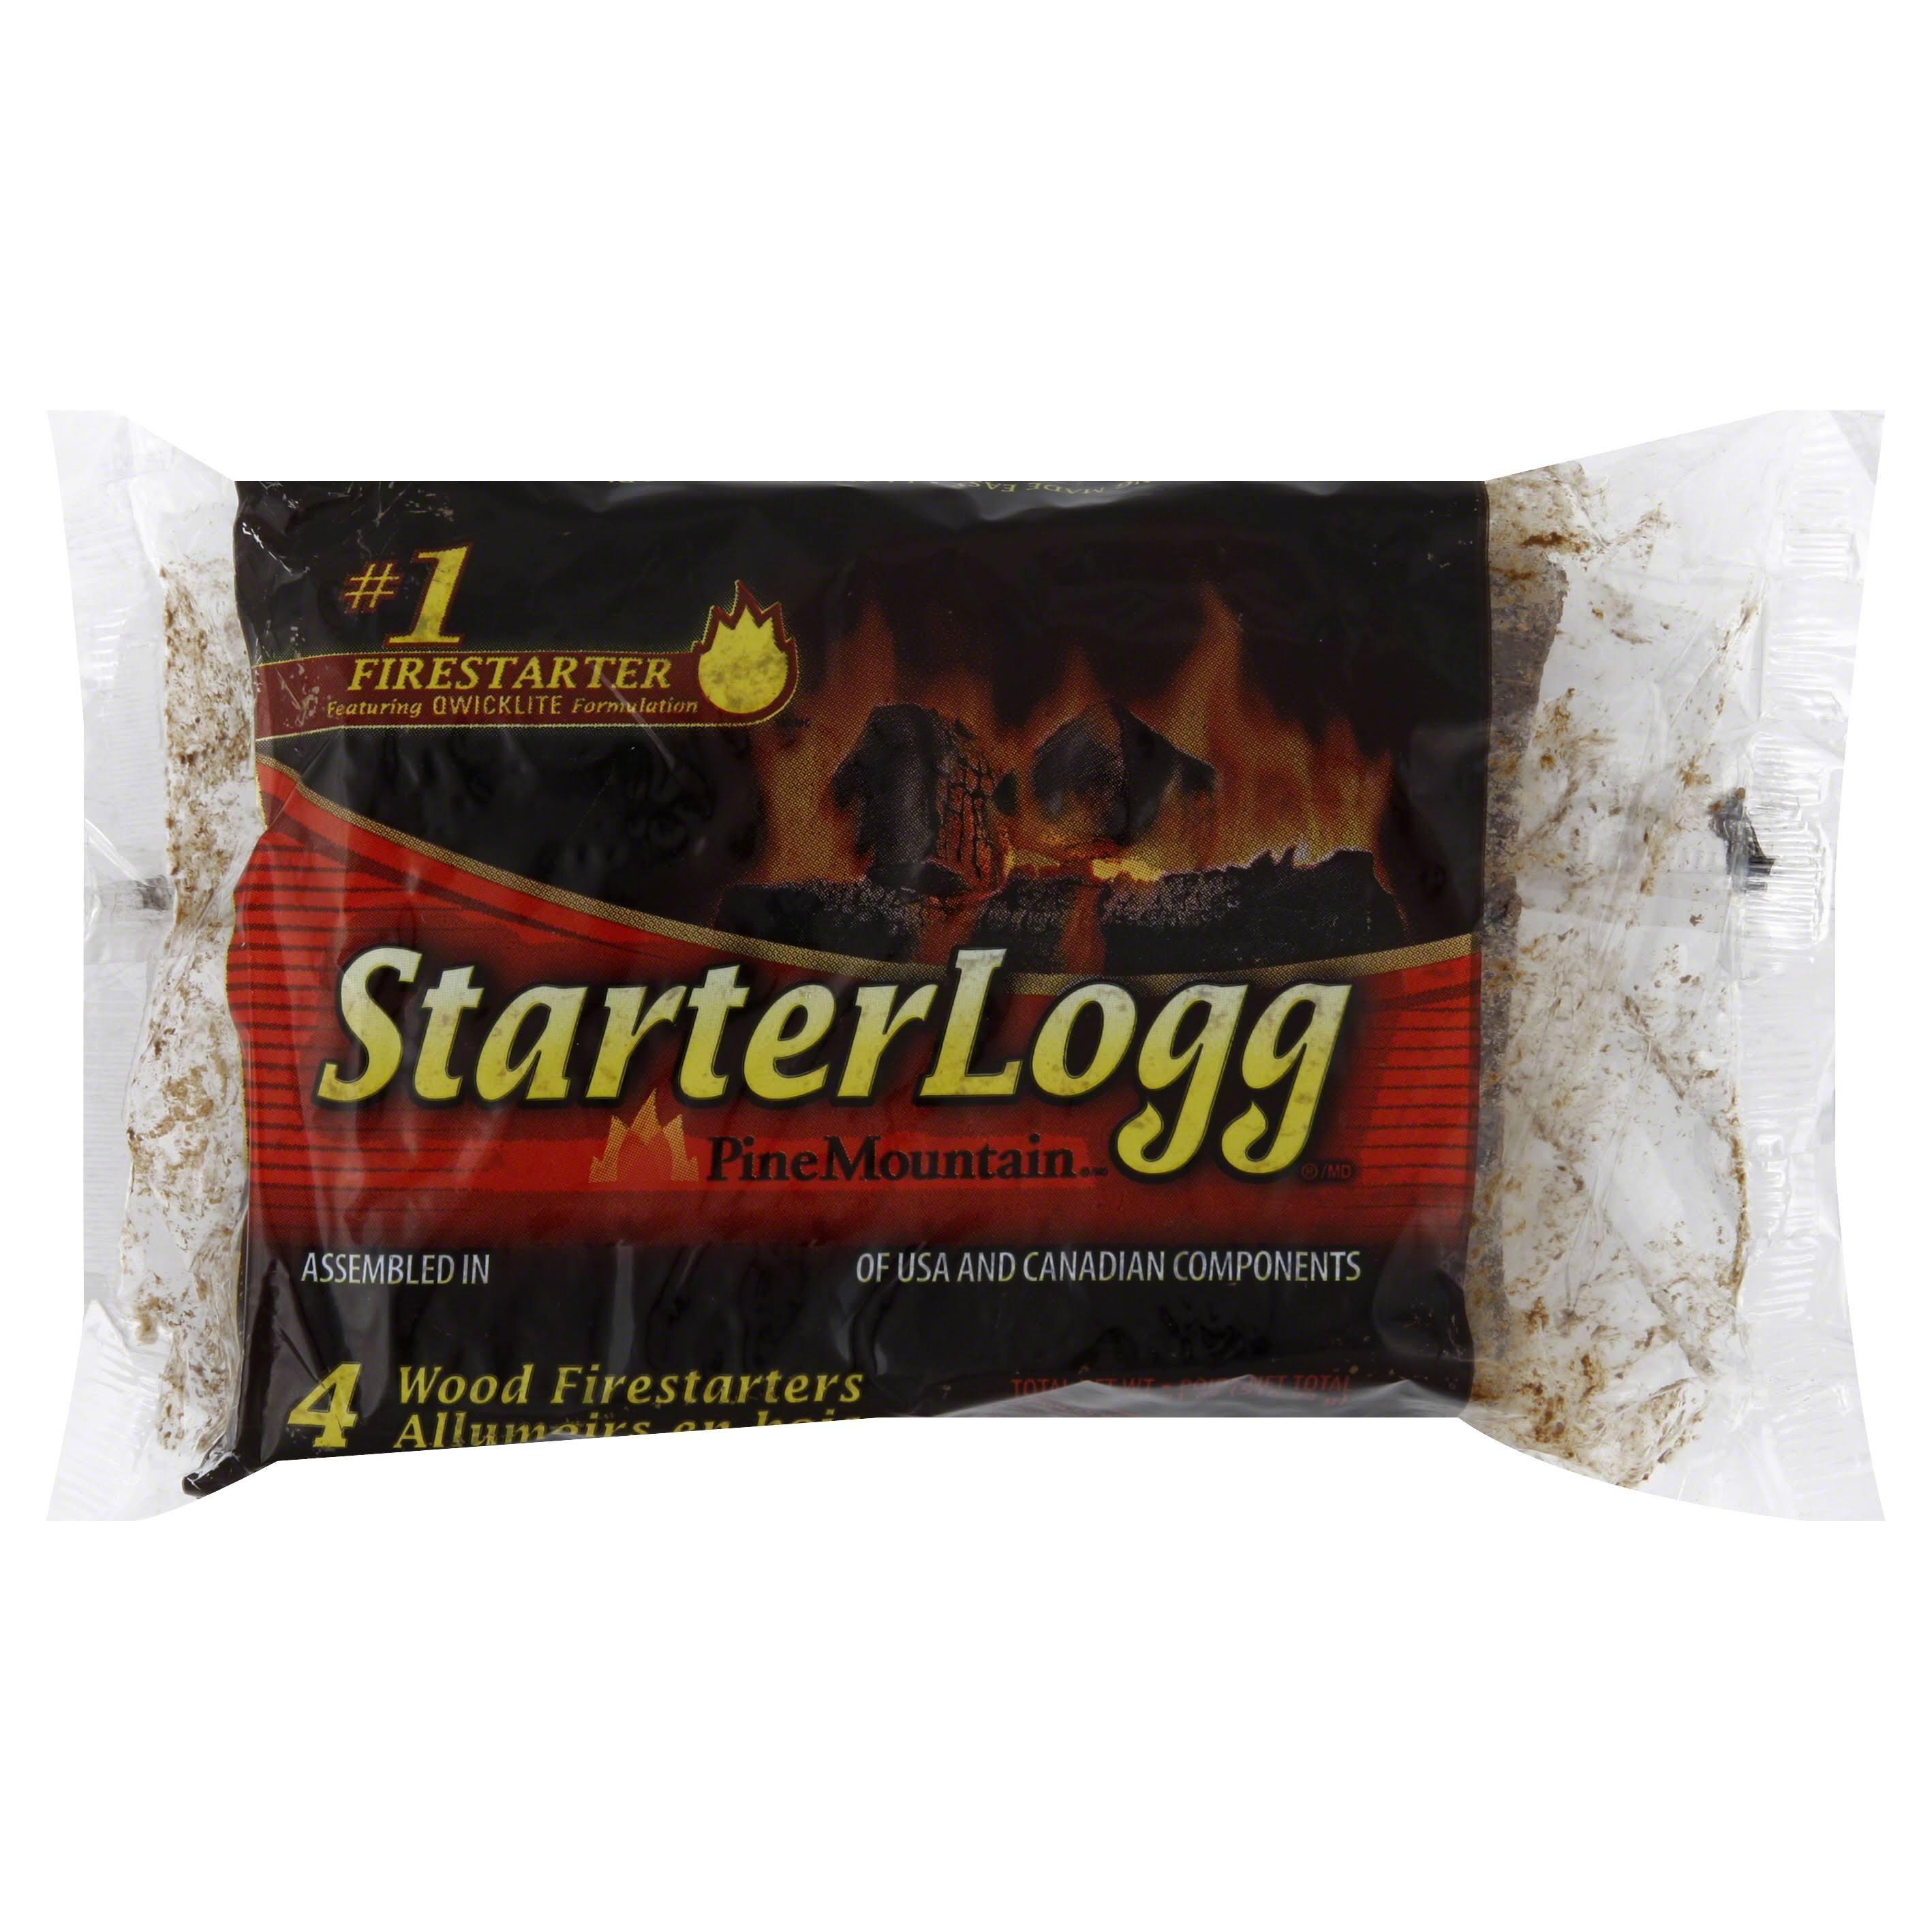 Pine Mountain Firestarters Starterlogg Firestarting Blocks - 24 Wood Firestarters